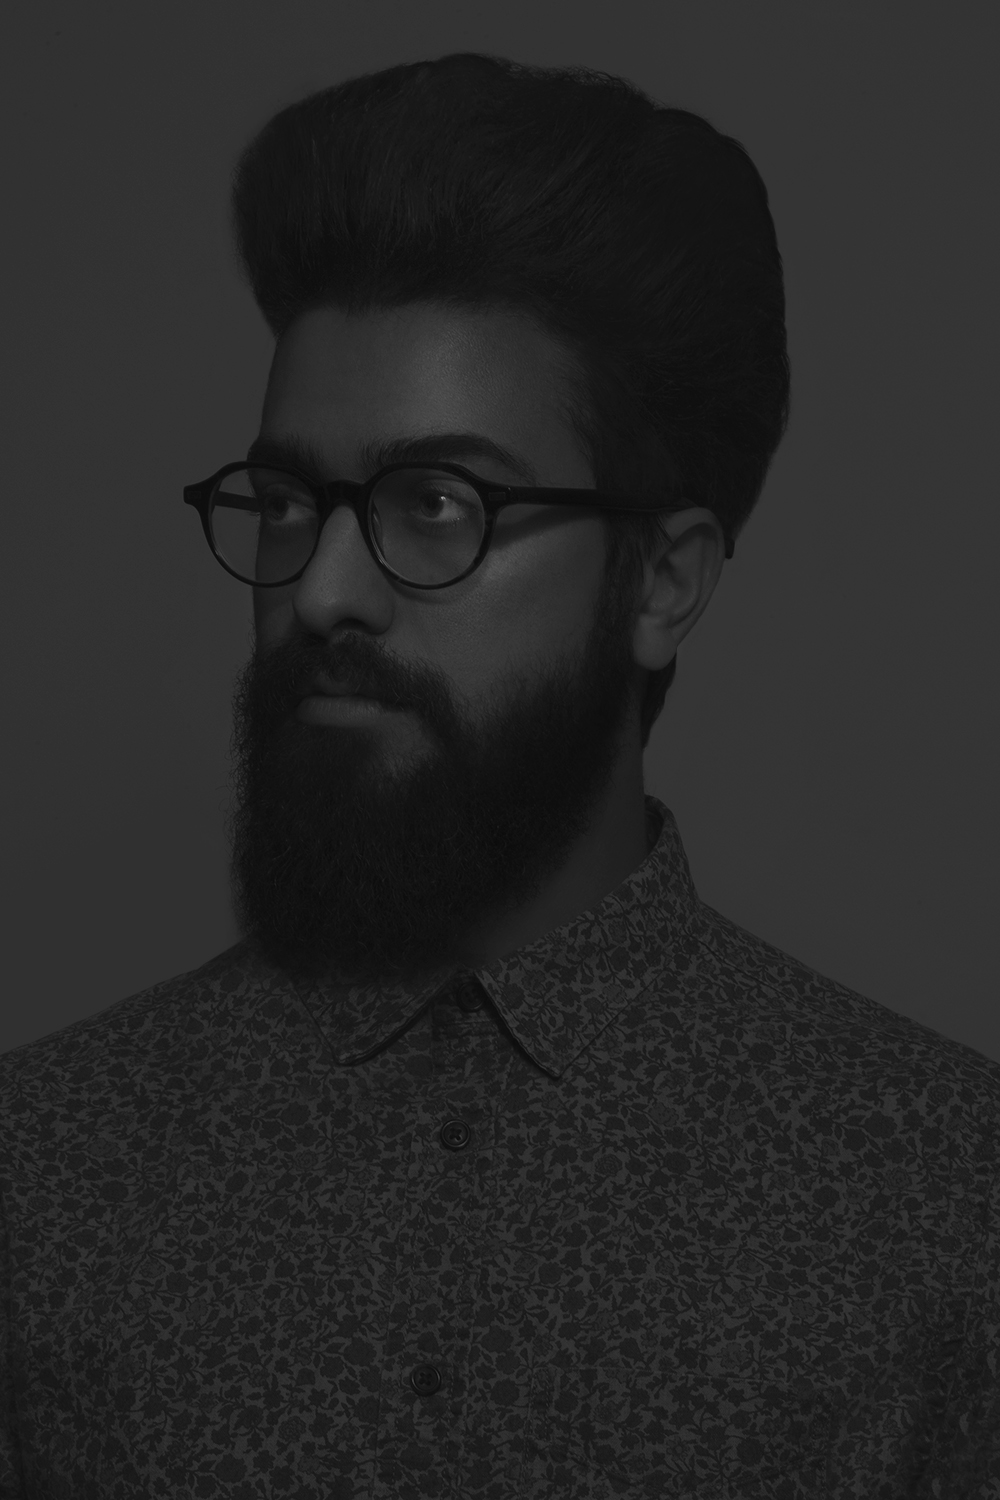 Black and white photo of a man's portrait with beard